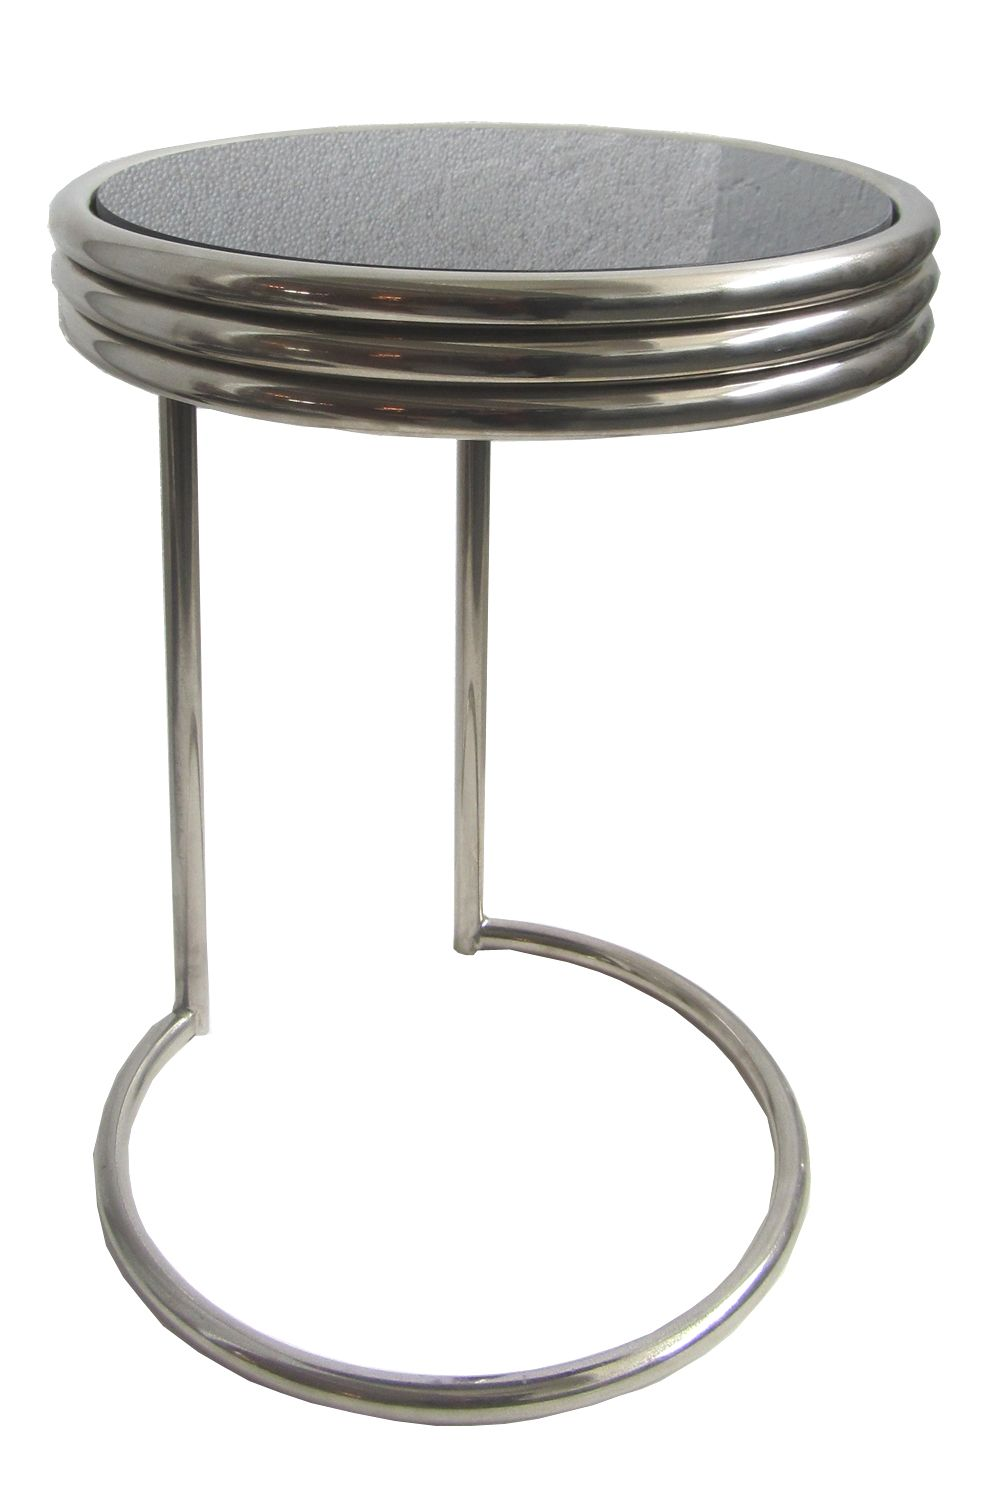 Deco Chrome And Steel Black Mirror Occasional Table, 1930s